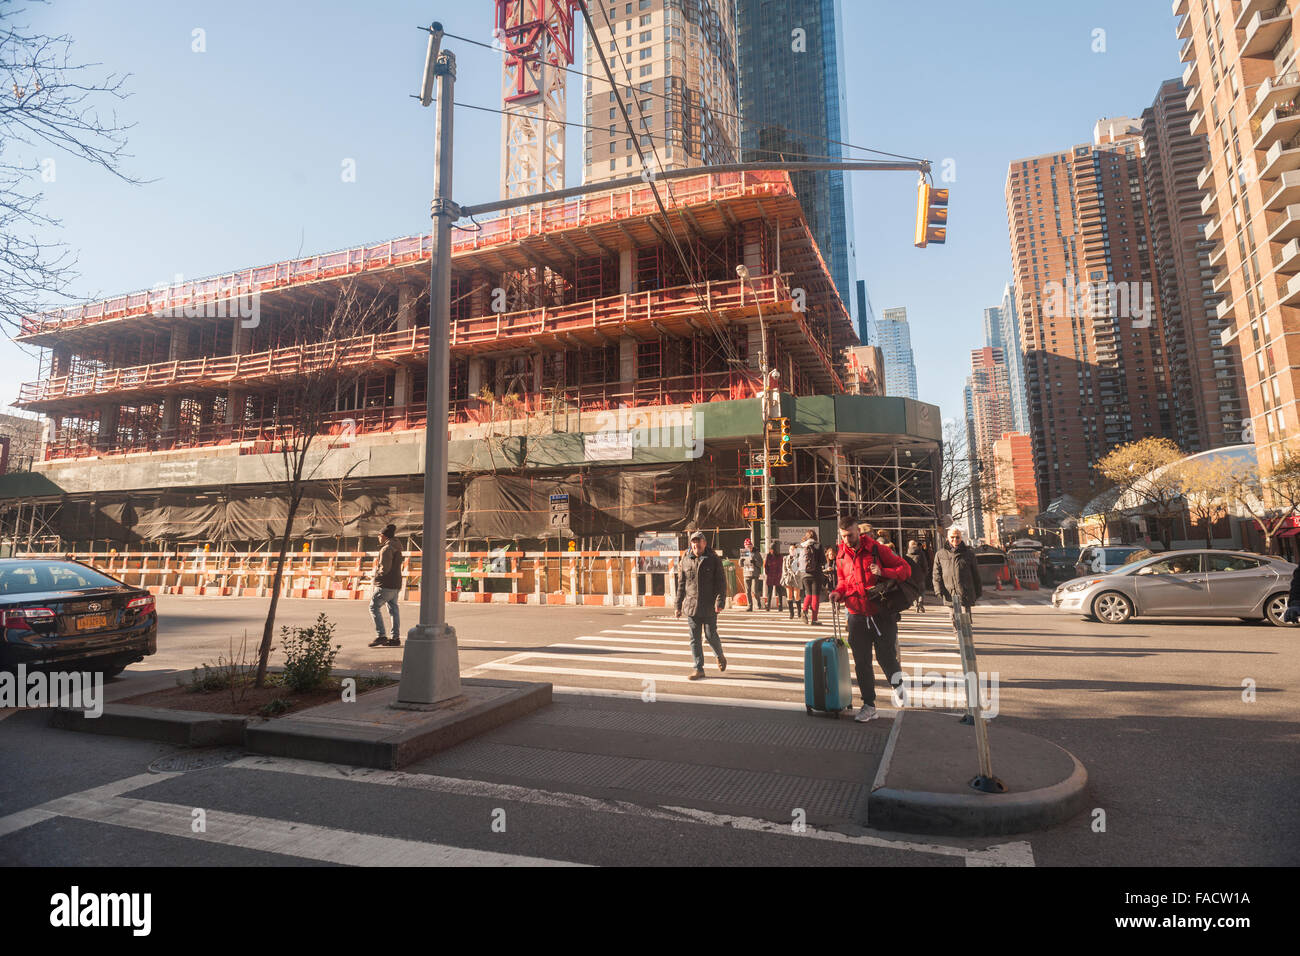 development in the clinton or hells kitchen neighborhood of new york on sunday december 20 2015 richard b levine - Hells Kitchen Neighborhood